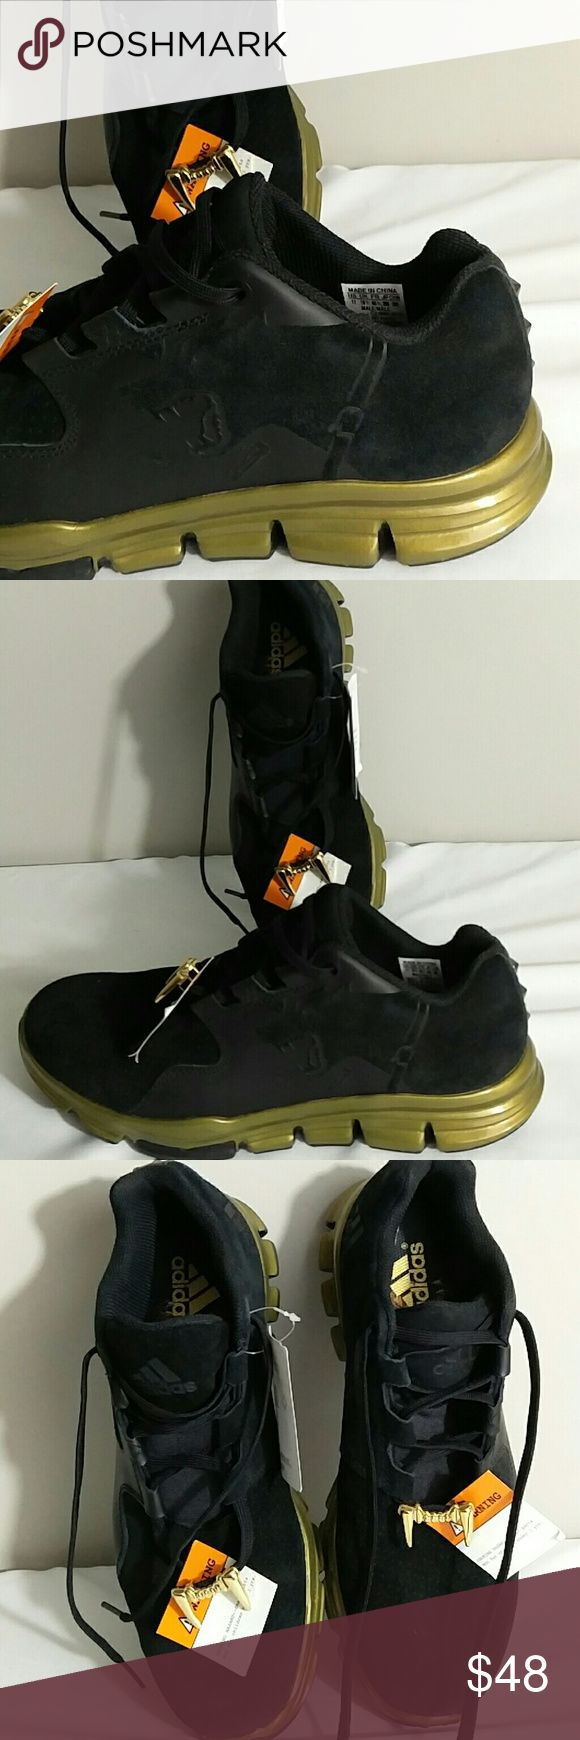 Adidas Gameday Snoop Mens 11 Black Gold Sneakers. You are looking at a new with tag Men's America Football Gameday Snoop size 11 black sneakers. Made in China Please look at pictures and ask questions before buying. Thanks for looking. adidas Shoes Sneakers